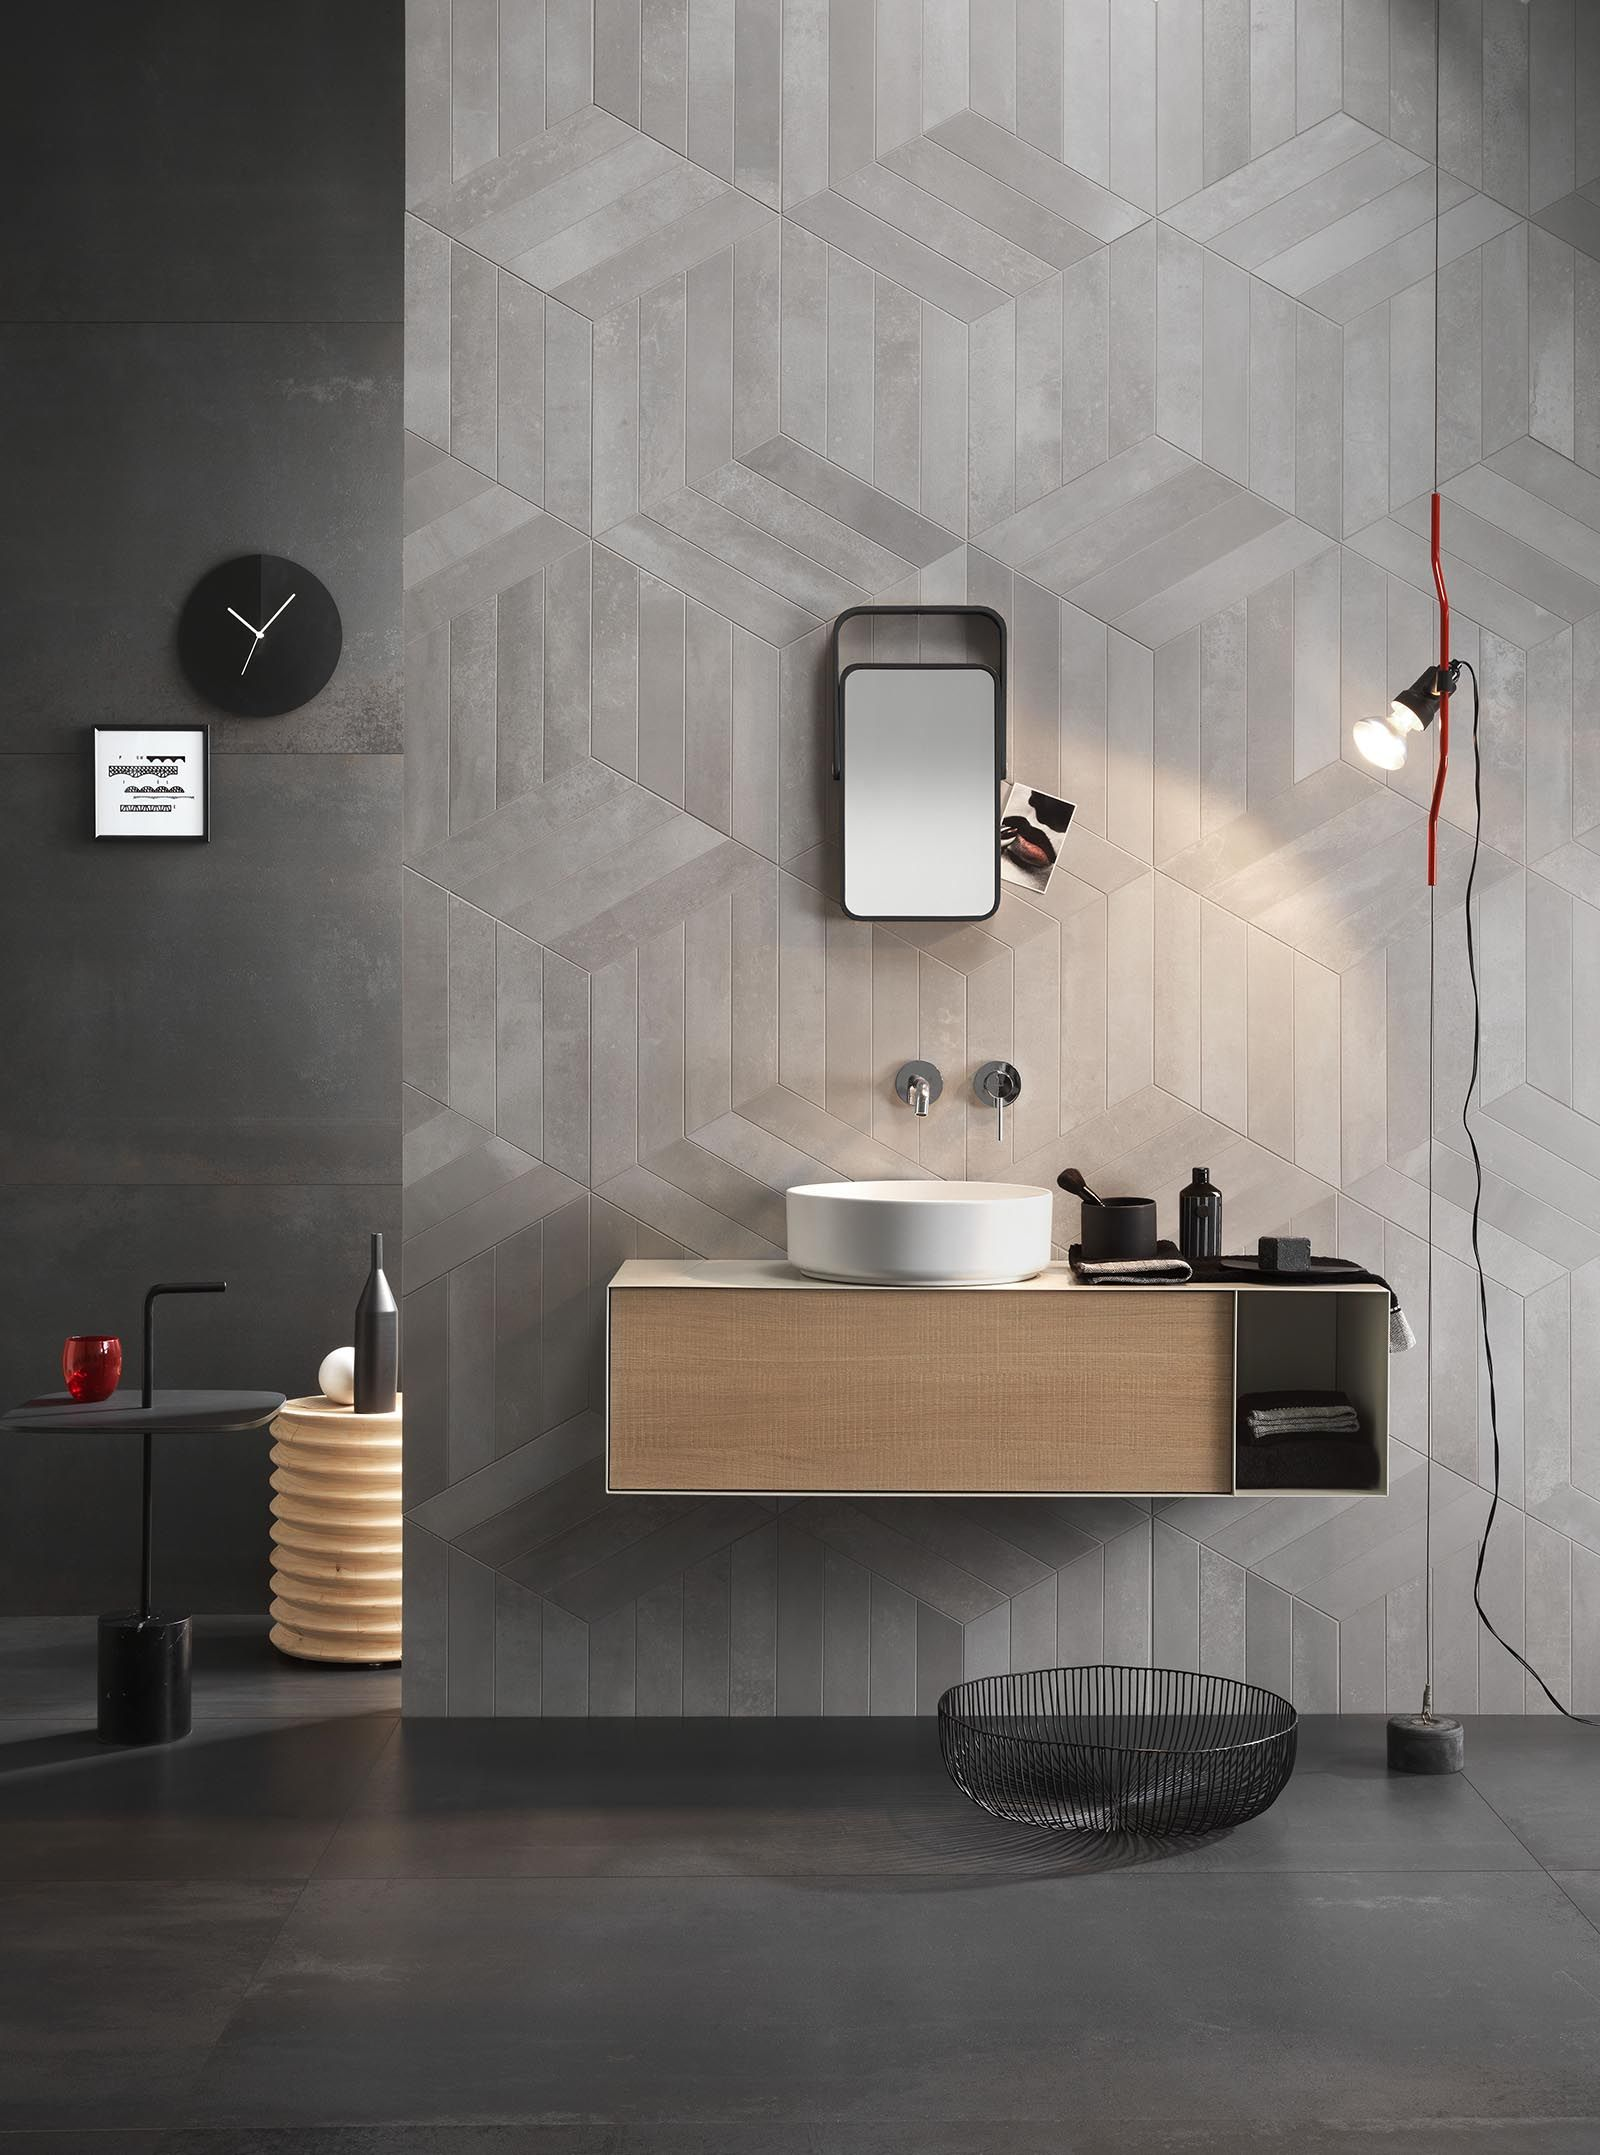 Metal Effects Porcelain Tile Creative Materials Corporation Bathroom Interior Design Metallic Wall Tiles Large Format Tile